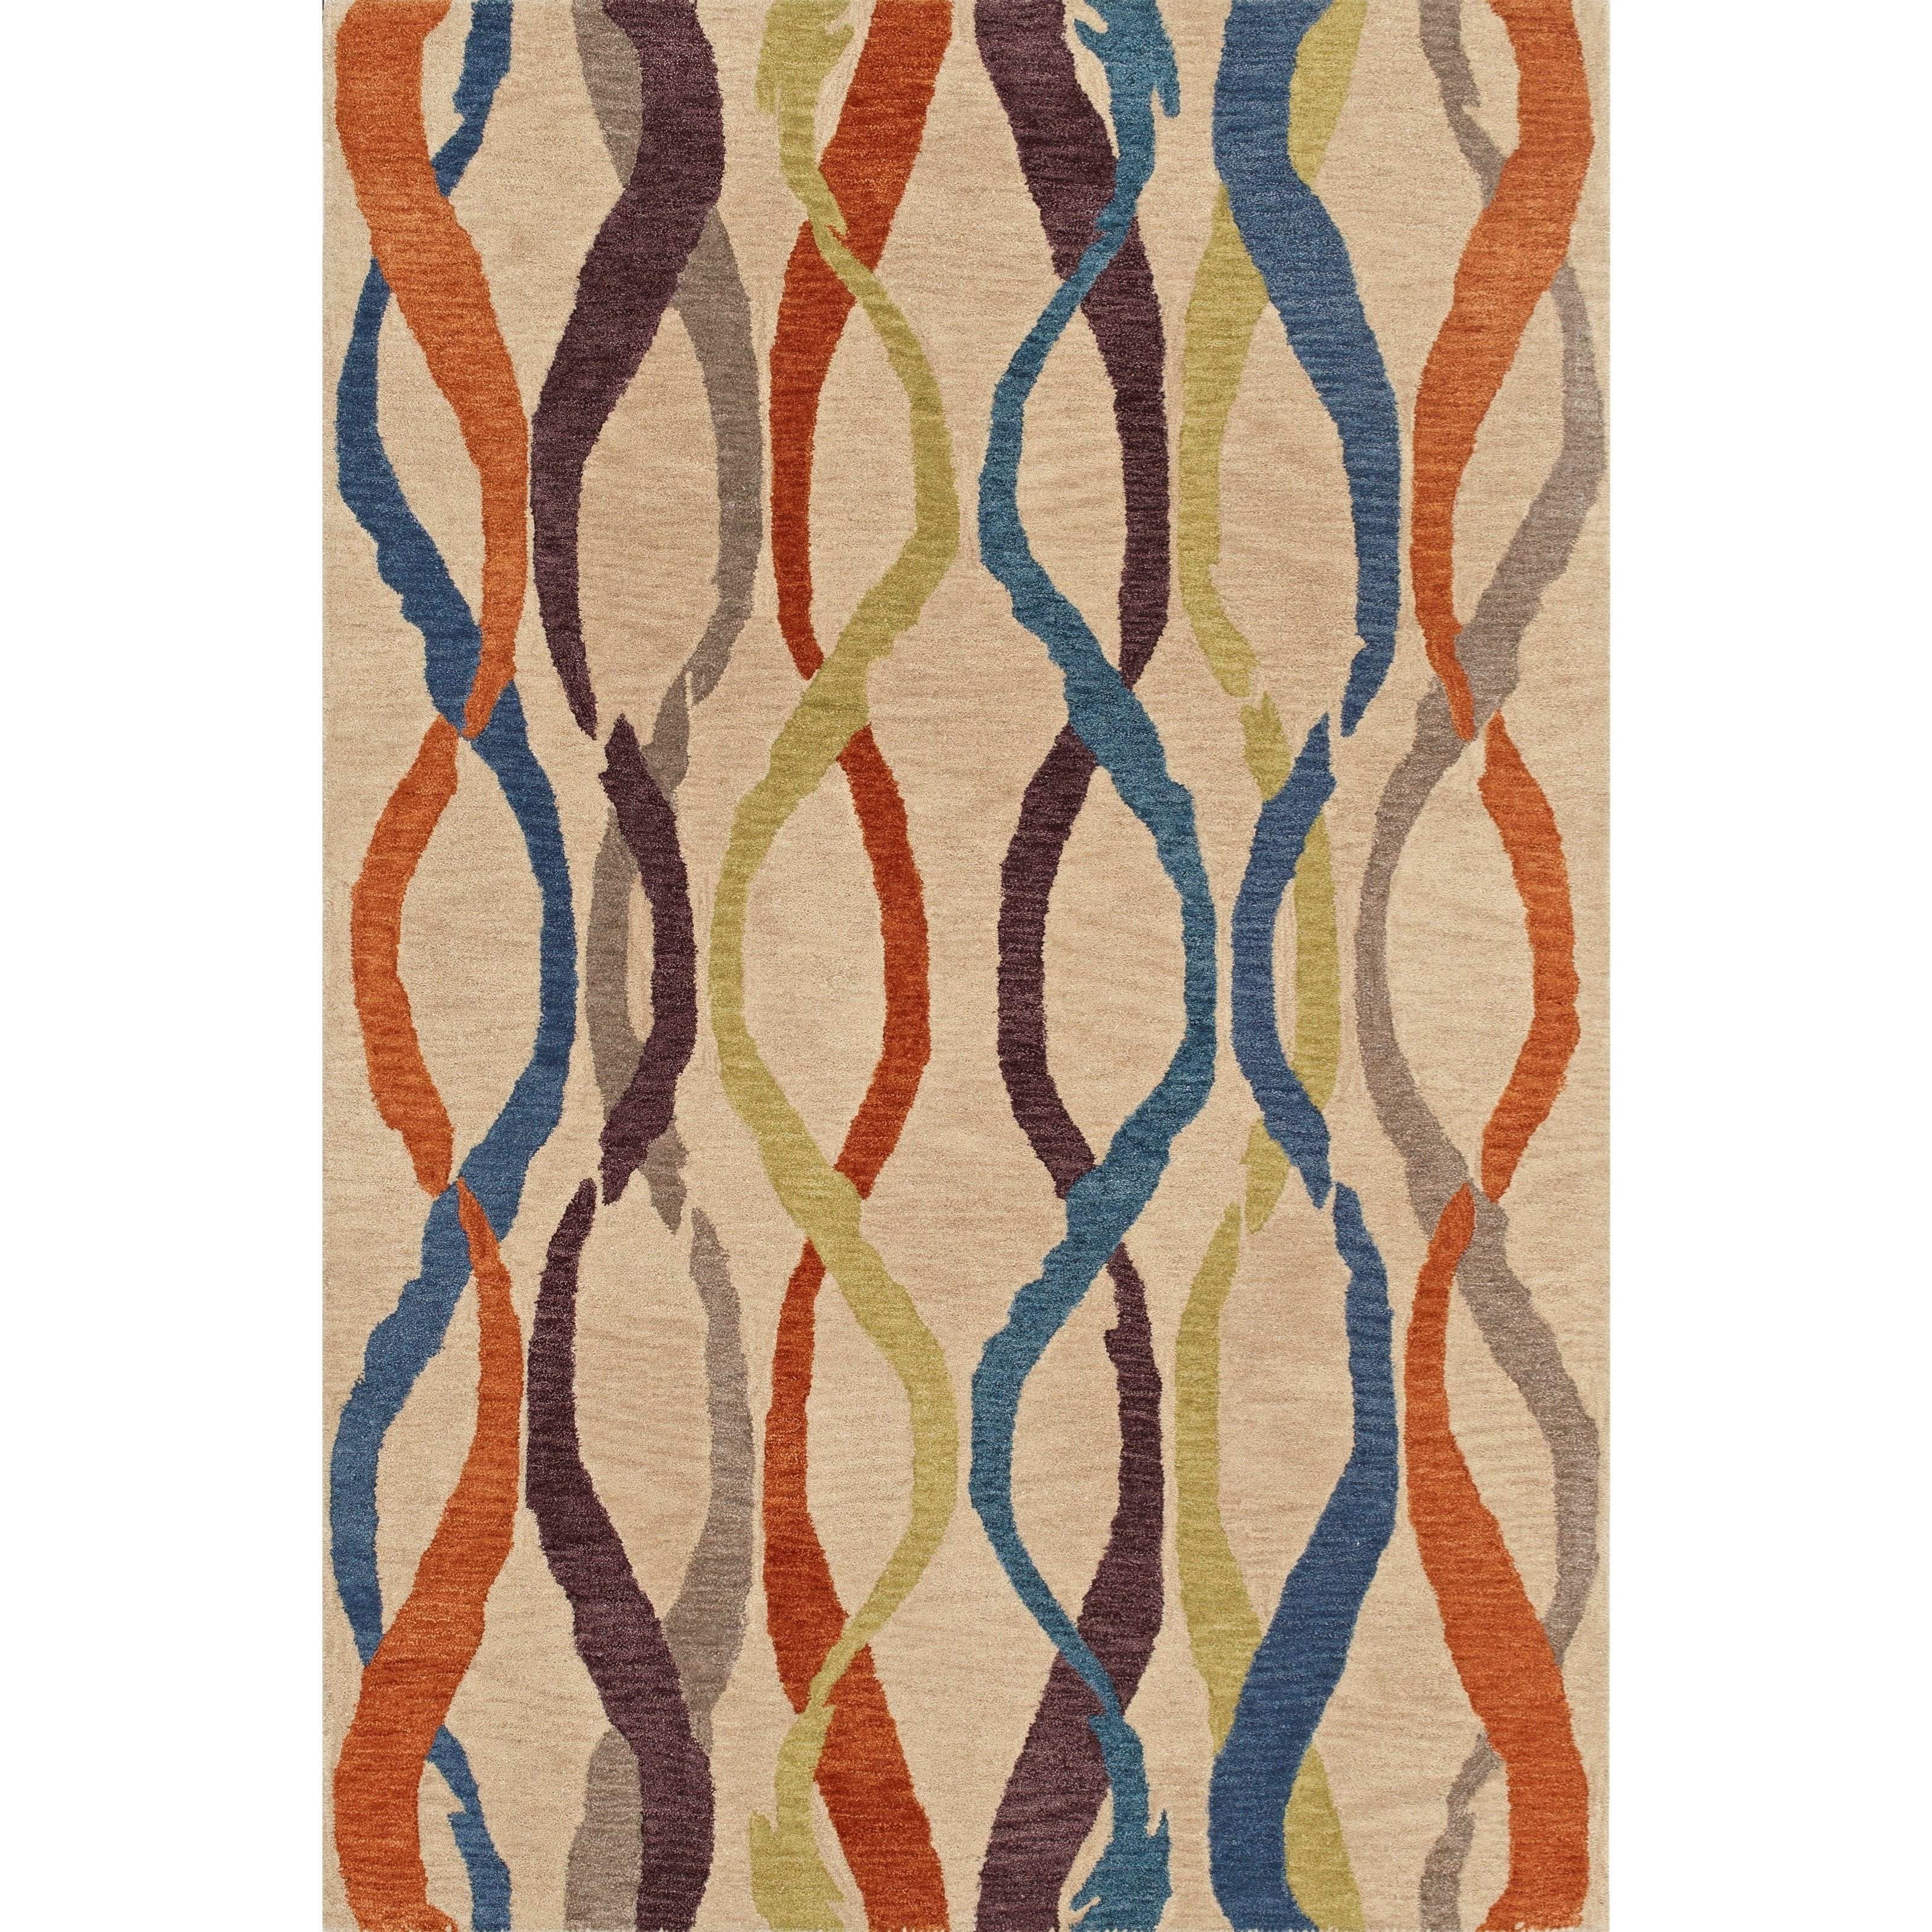 Dalyn Impulse Linen 9'X13' Rug - Item Number: IS1LI9X13